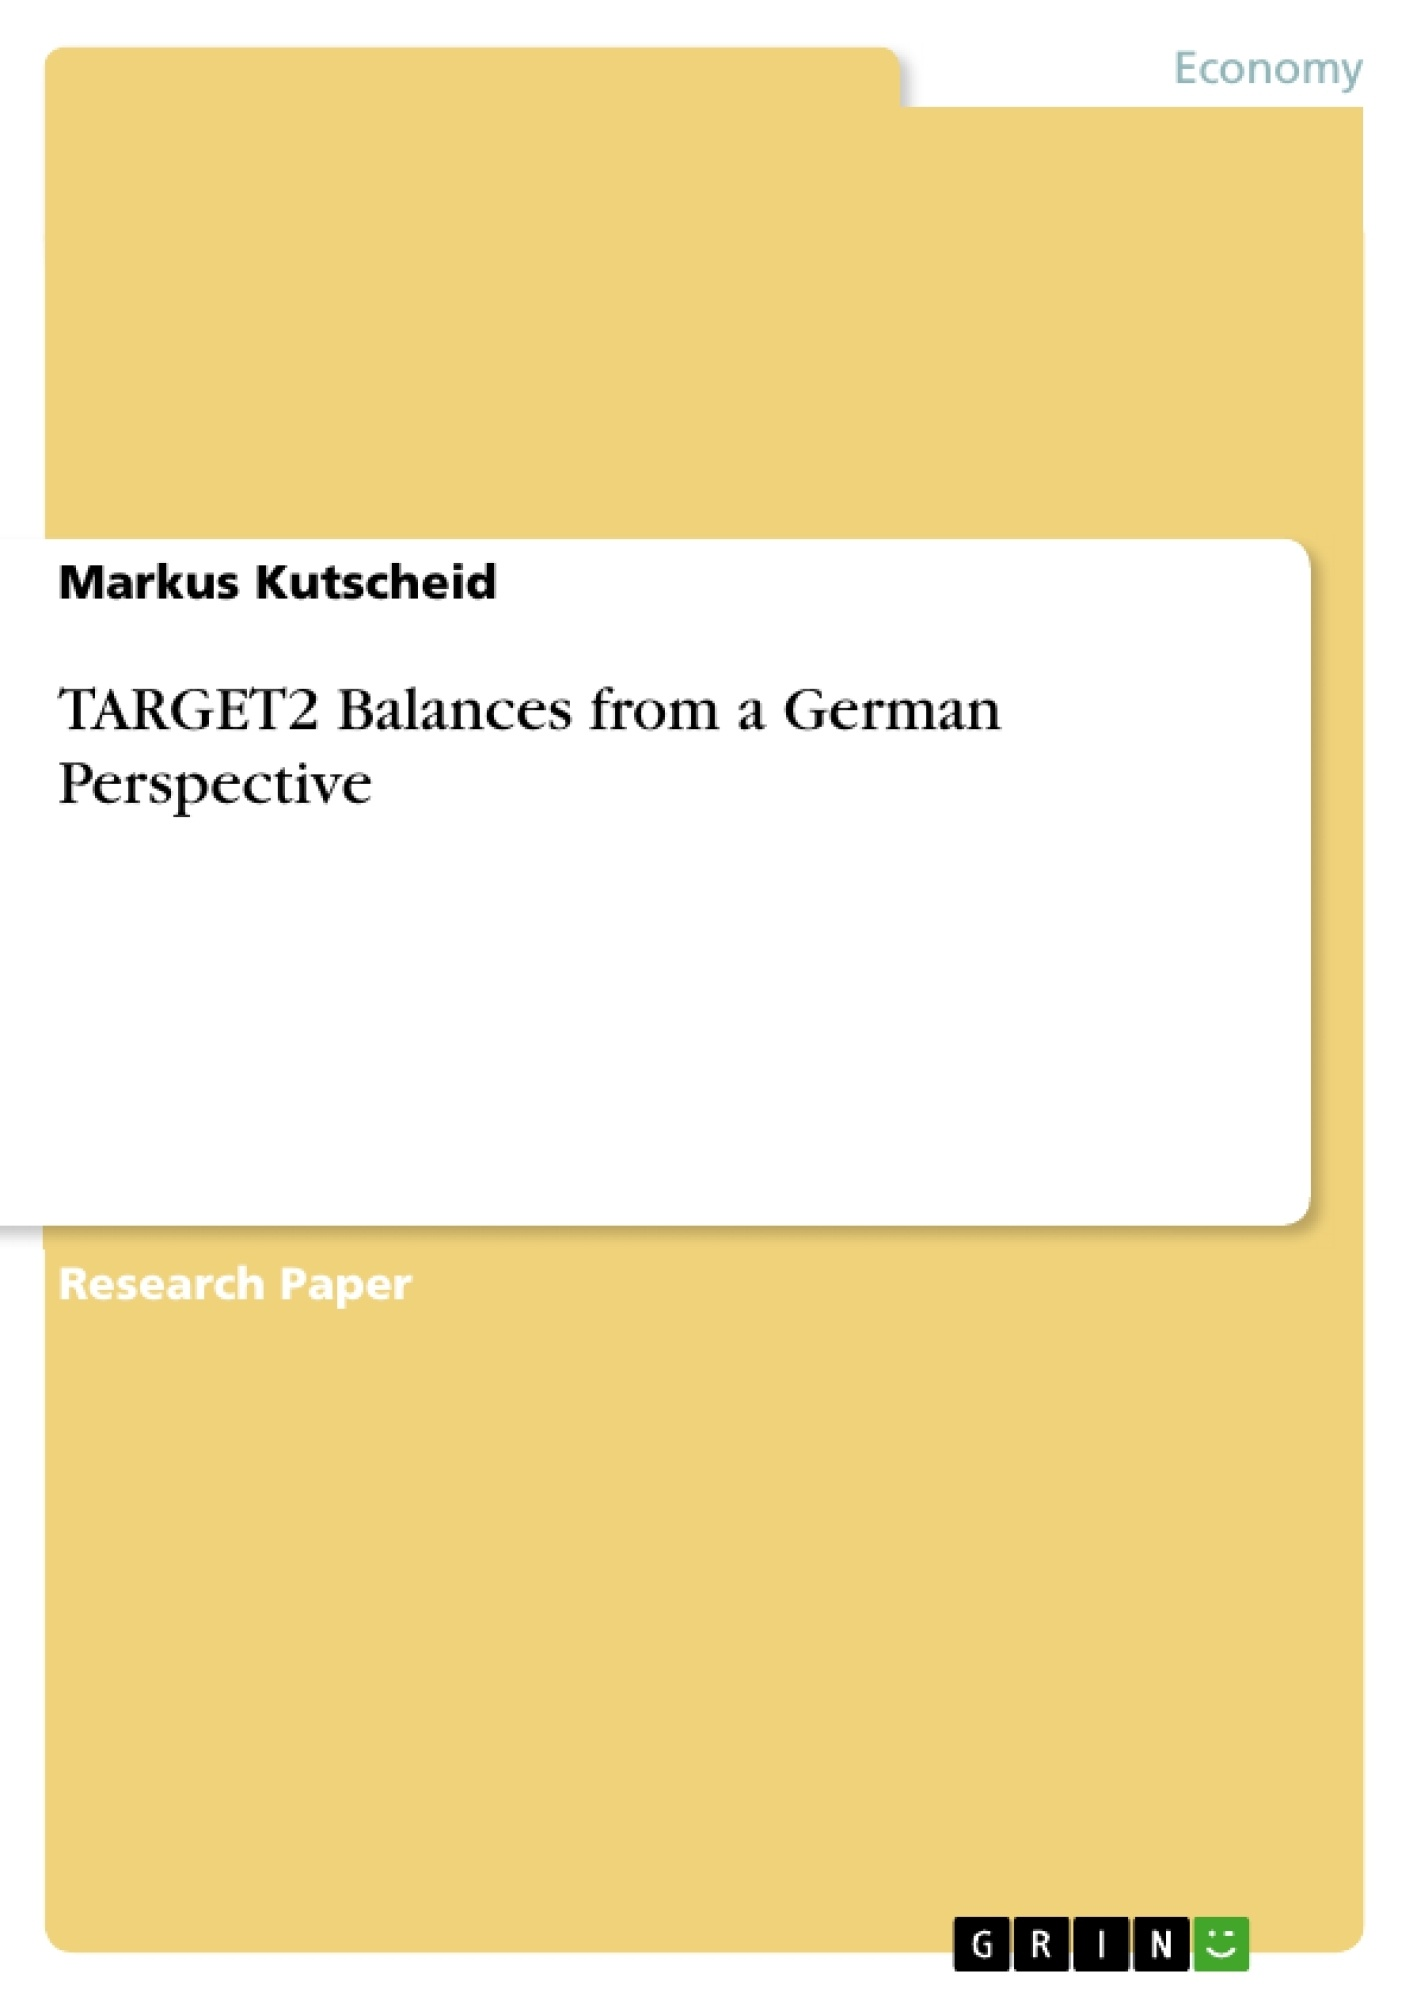 Title: TARGET2 Balances from a German Perspective